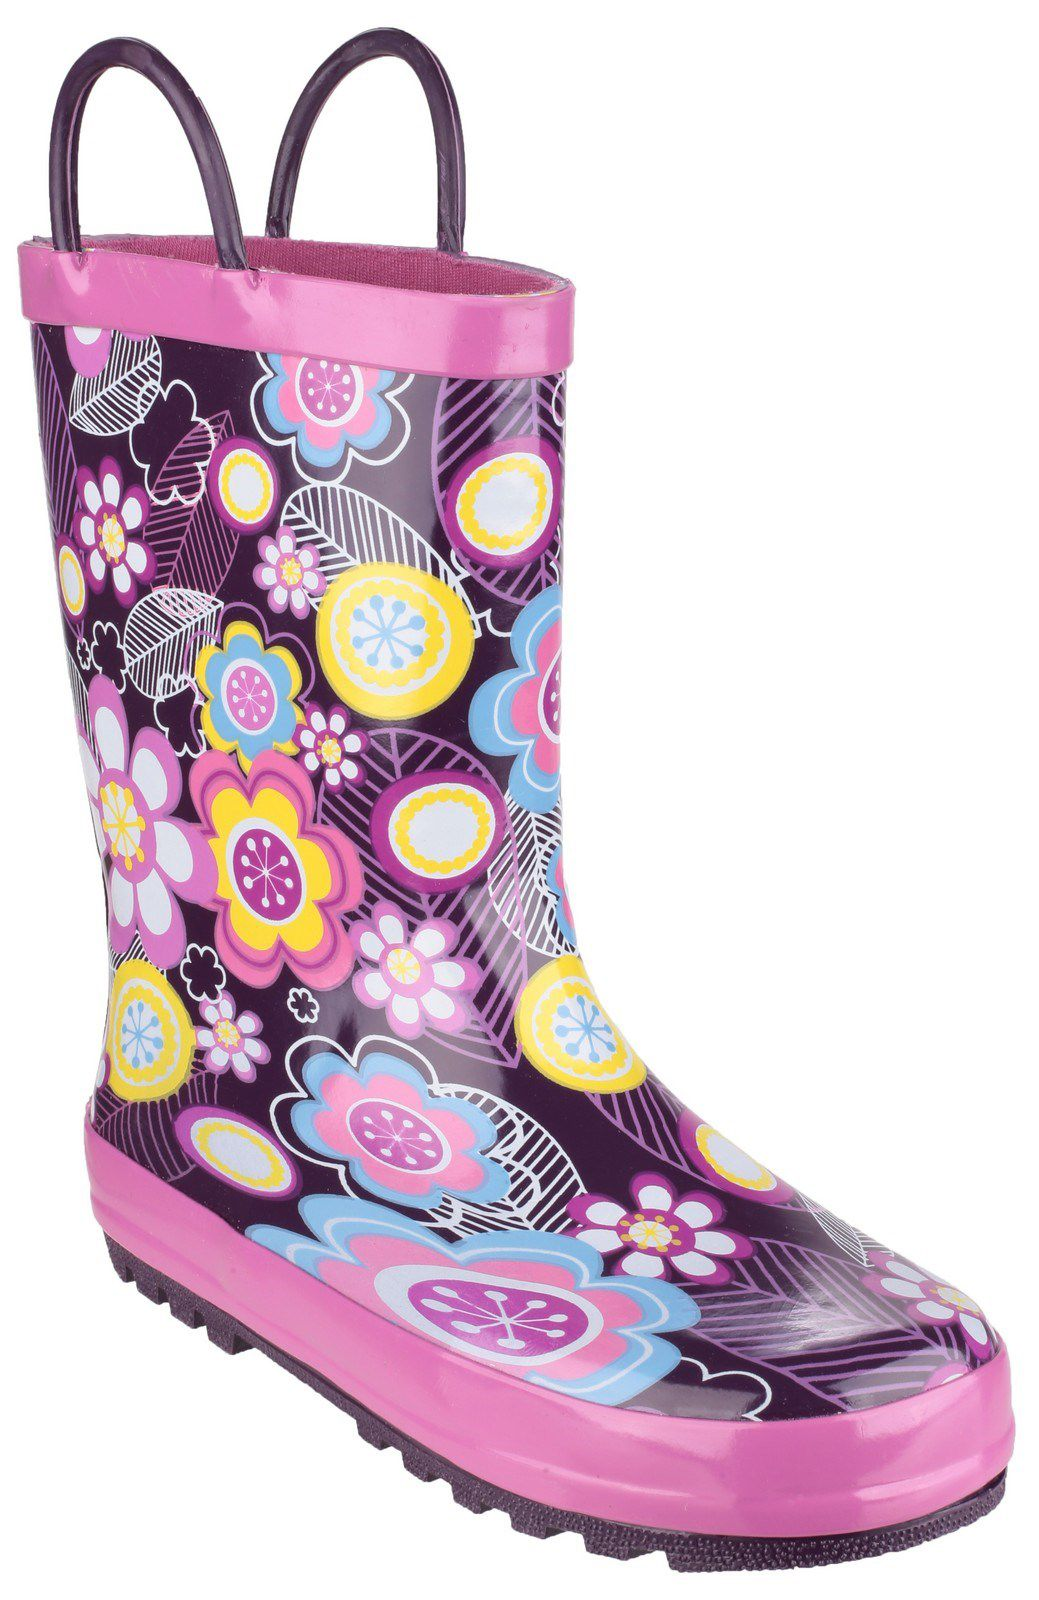 Cotswold Kids Puddle Boot Wellies, Purple